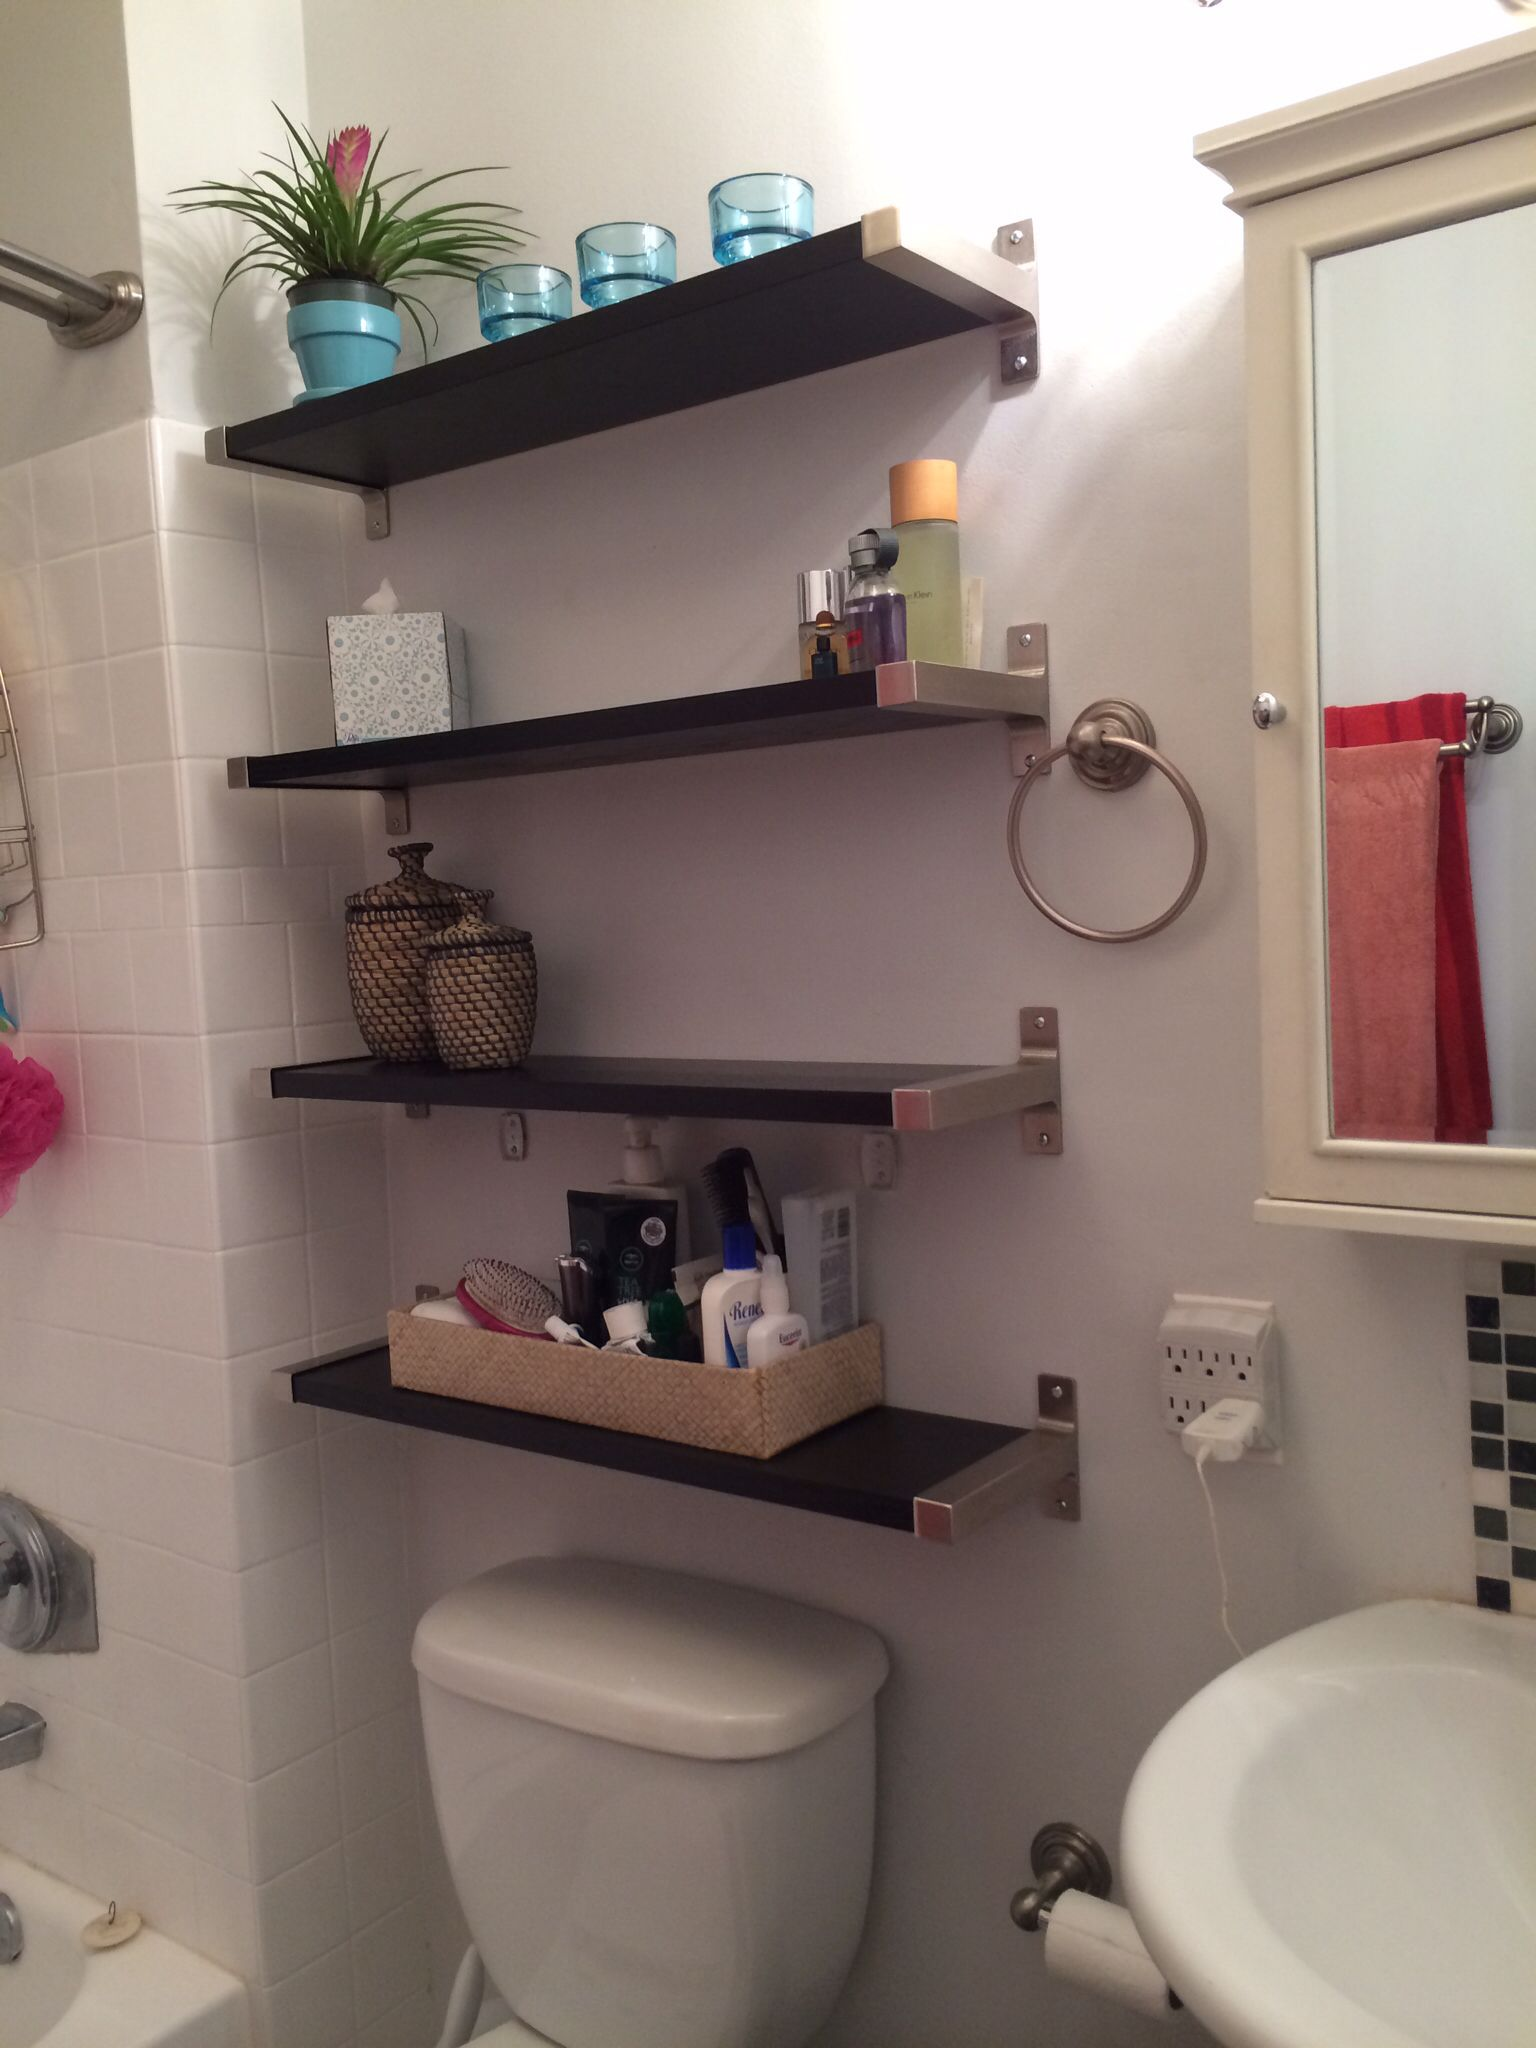 Small Bathroom Solutions Ikea Shelves Bathroom Pinterest - Bathroom accessories for small bathroom ideas